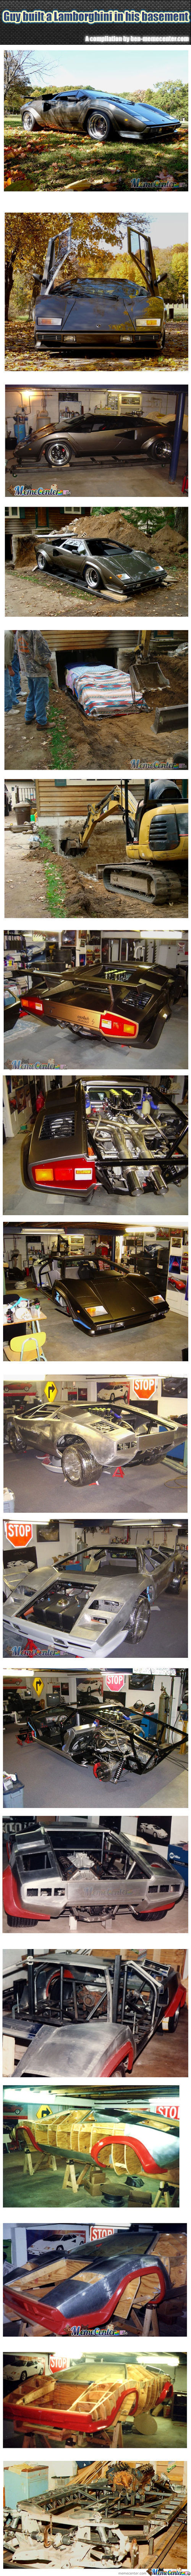 Guy Built A Lamborghini In His Basement